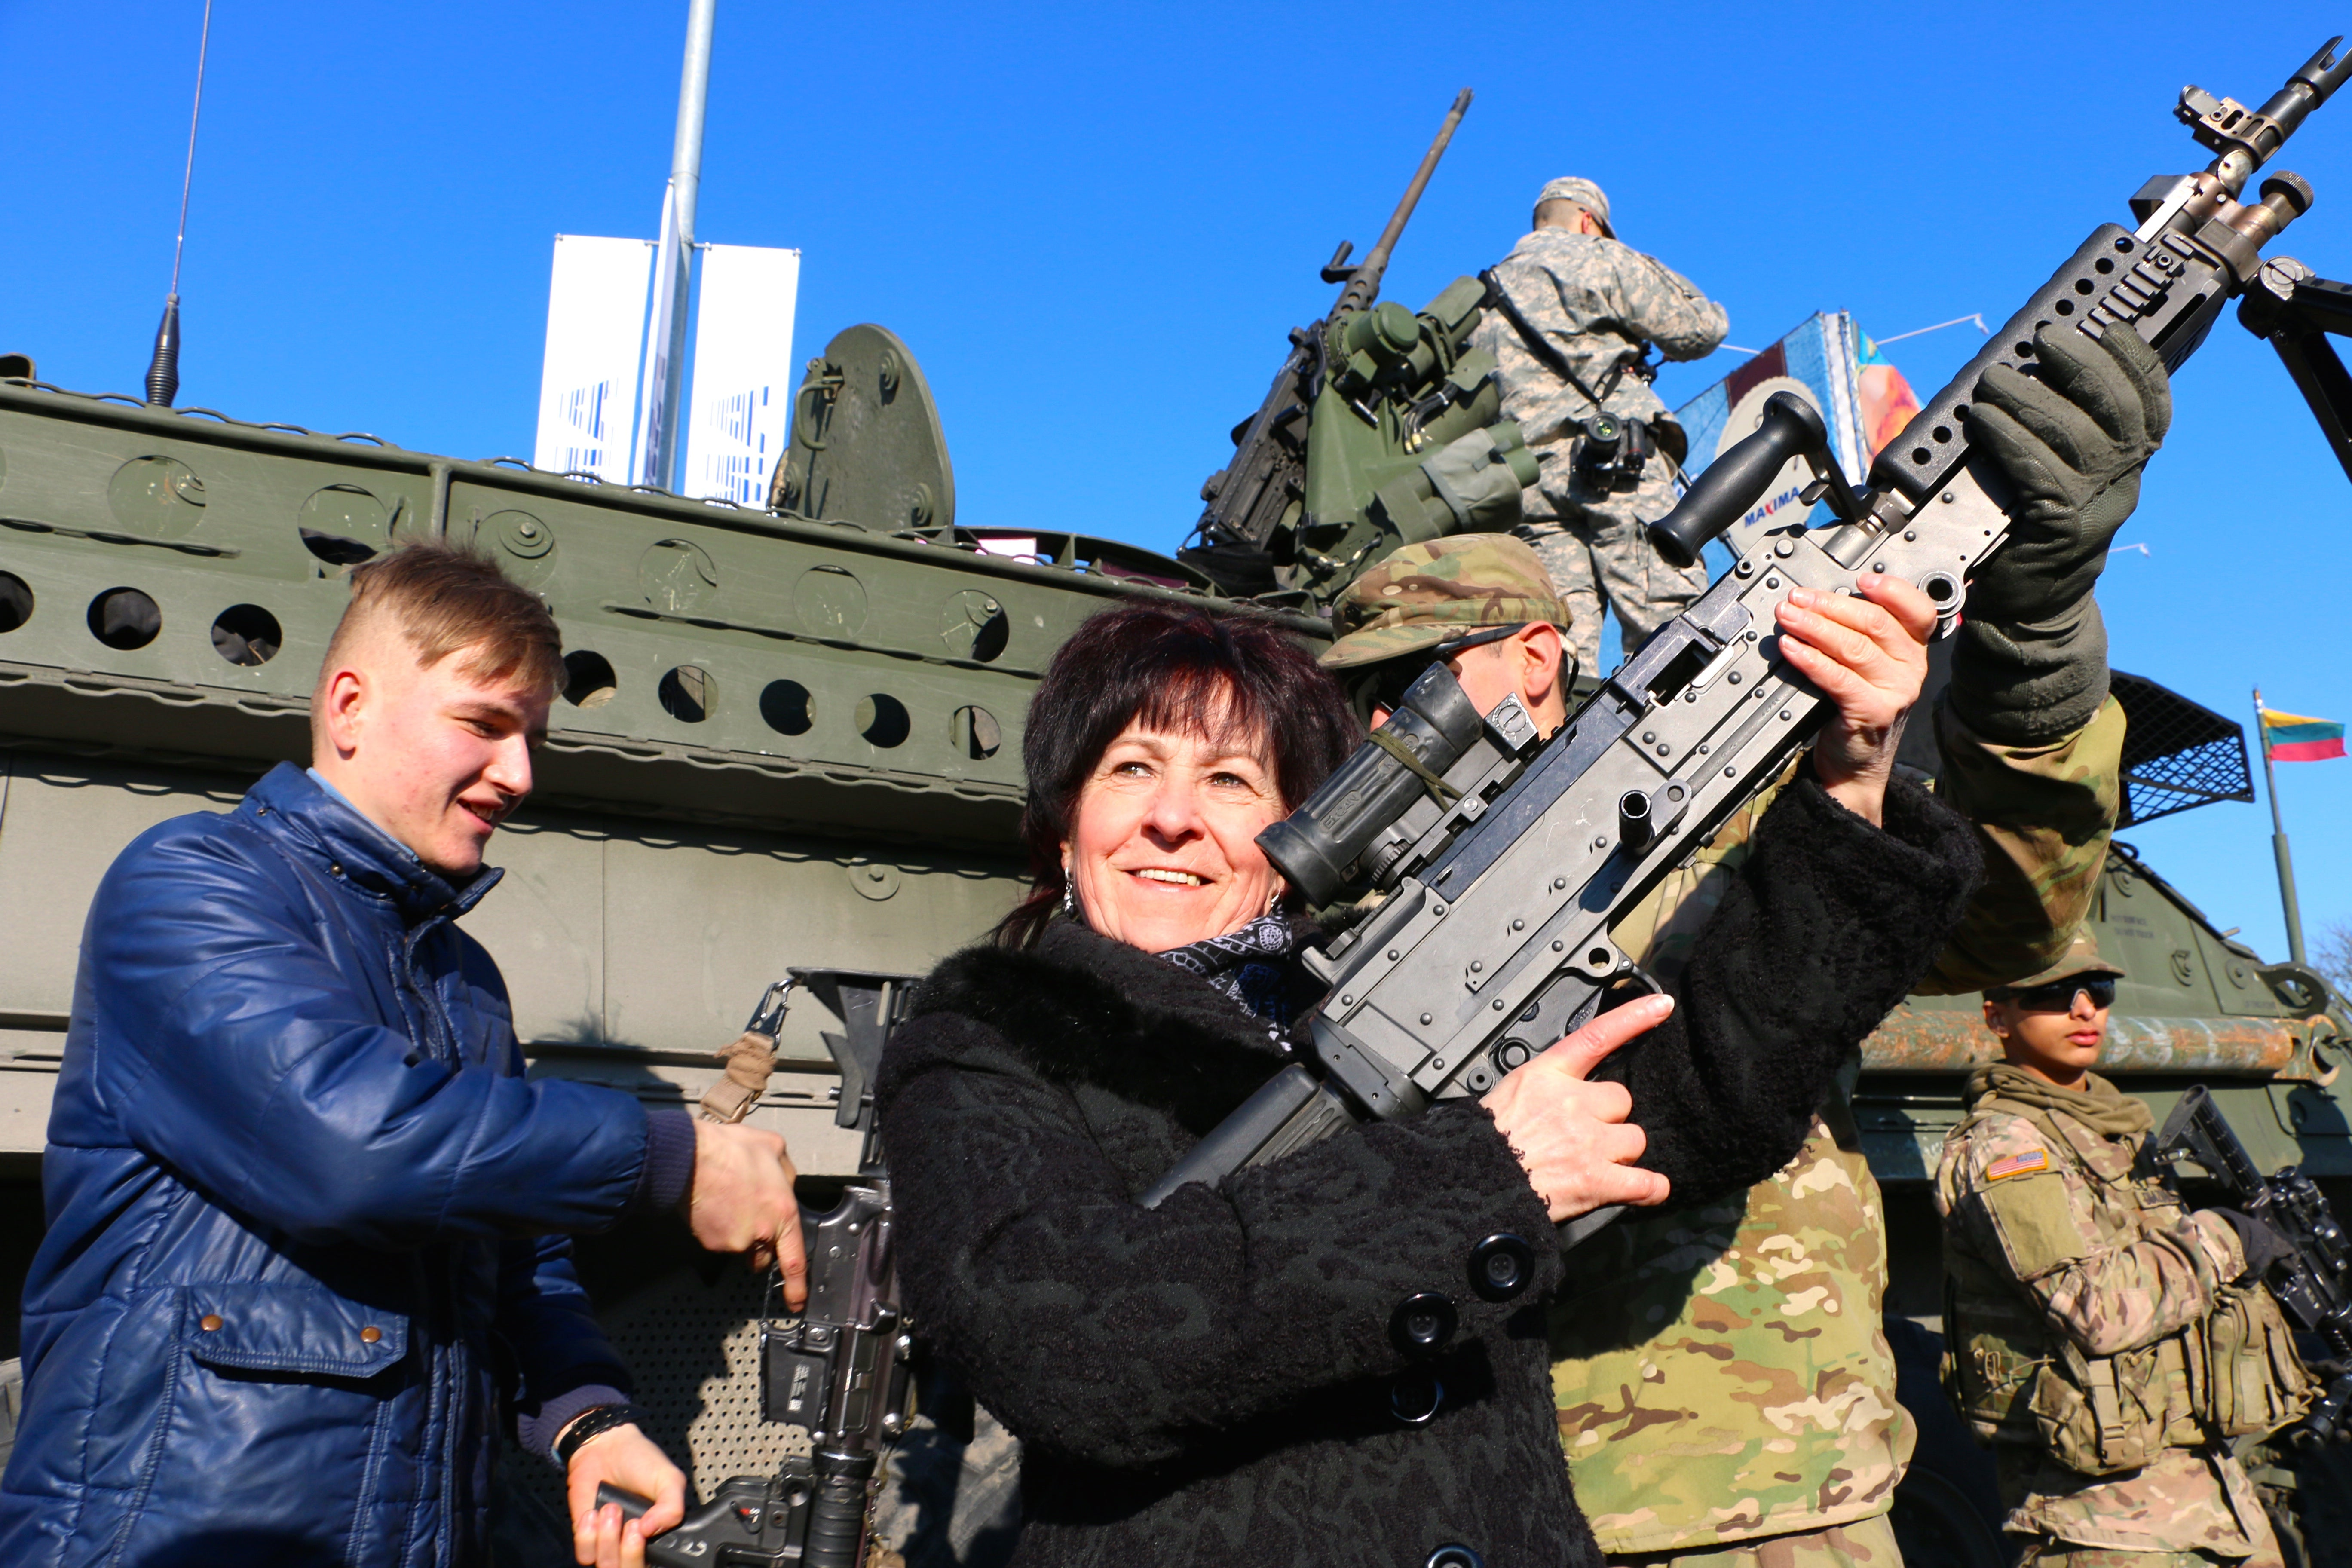 A Lithuanian woman at a U.S. Army Stryker static display in Marijampole, Lithuania on March 24. (Photo: Nolan Peterson/The Daily Signal)